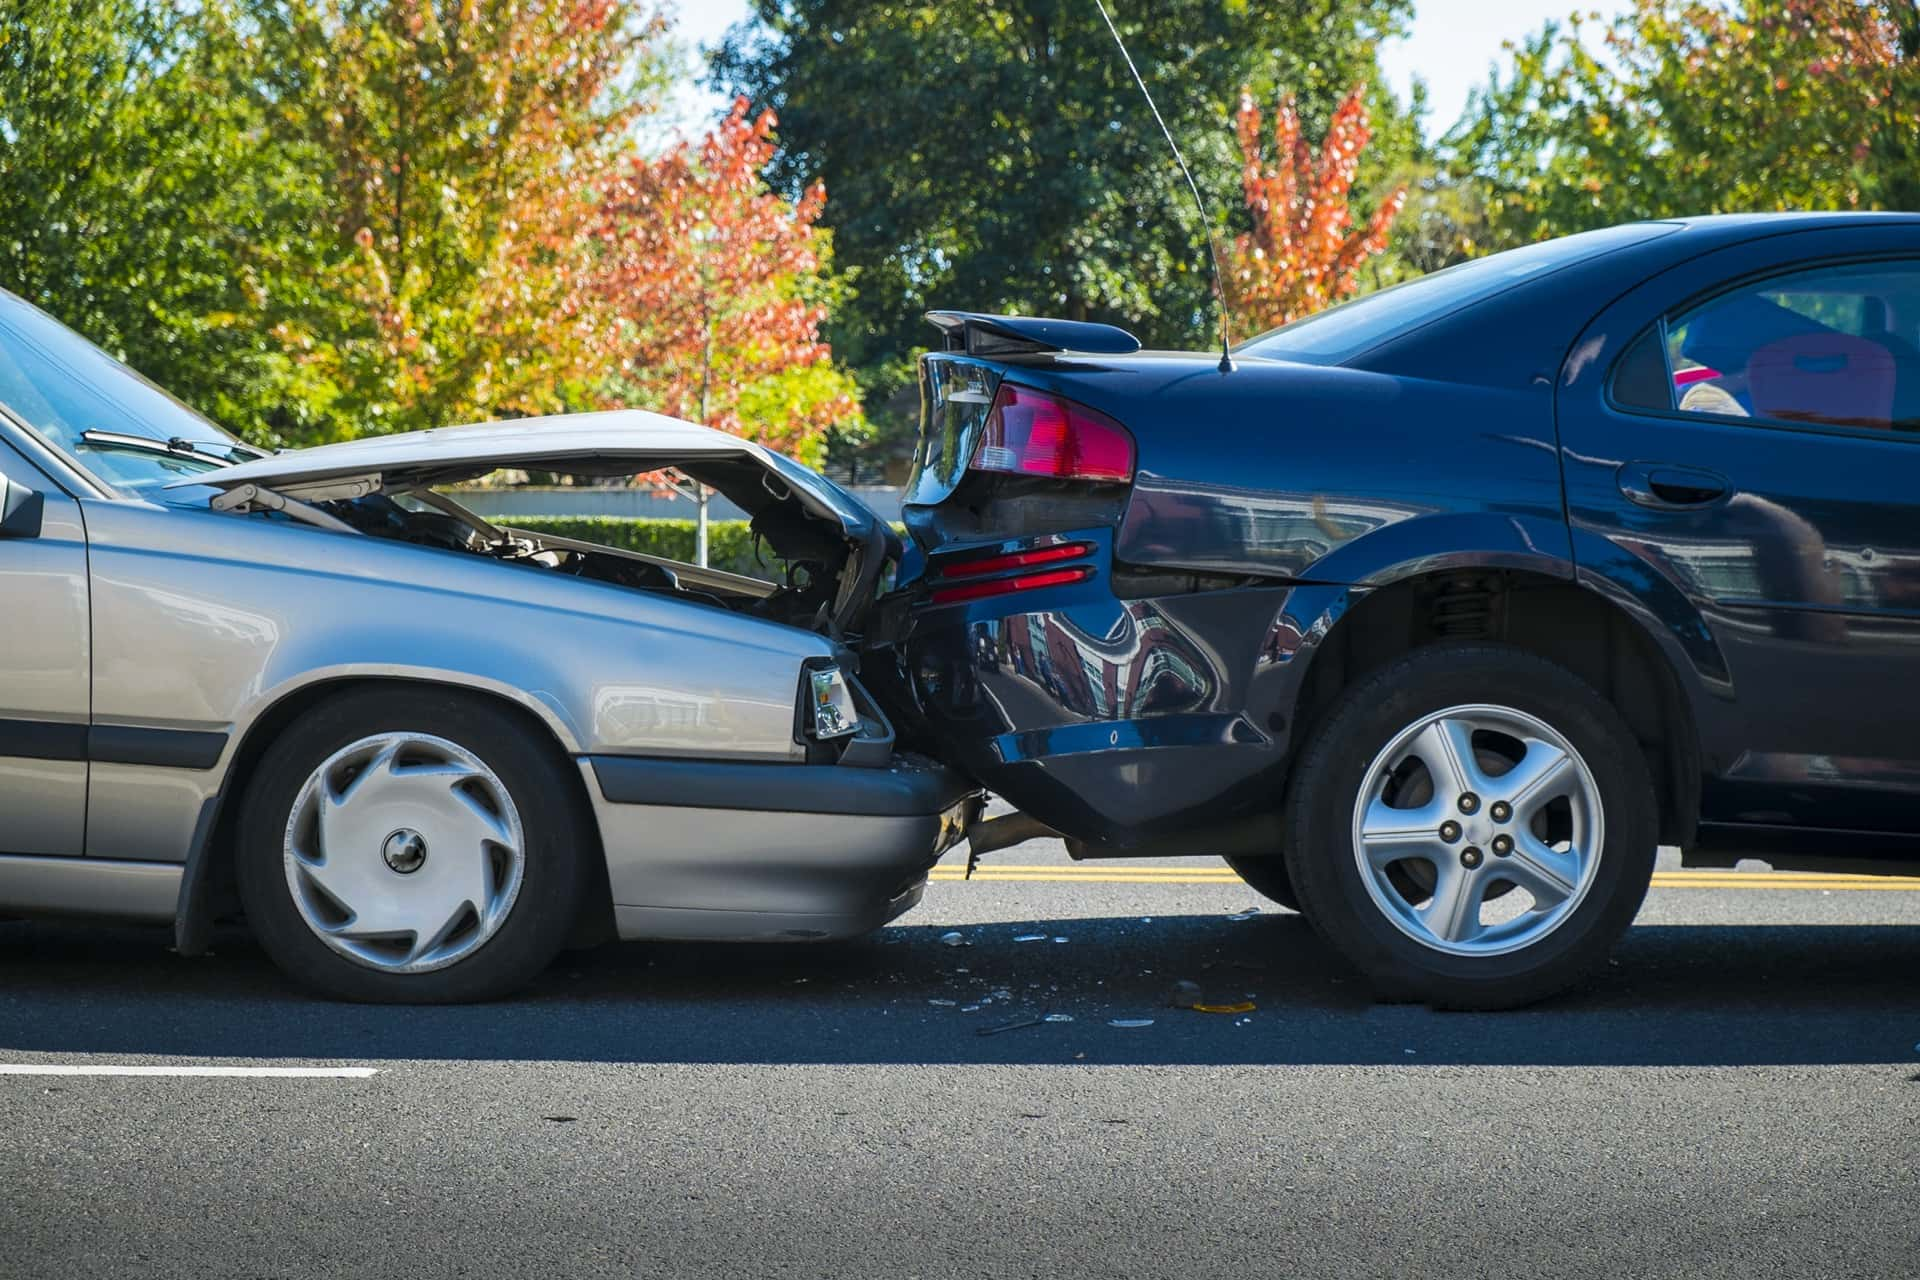 The Five Questions You Need to Ask Before Hiring an Auto Accident Attorney